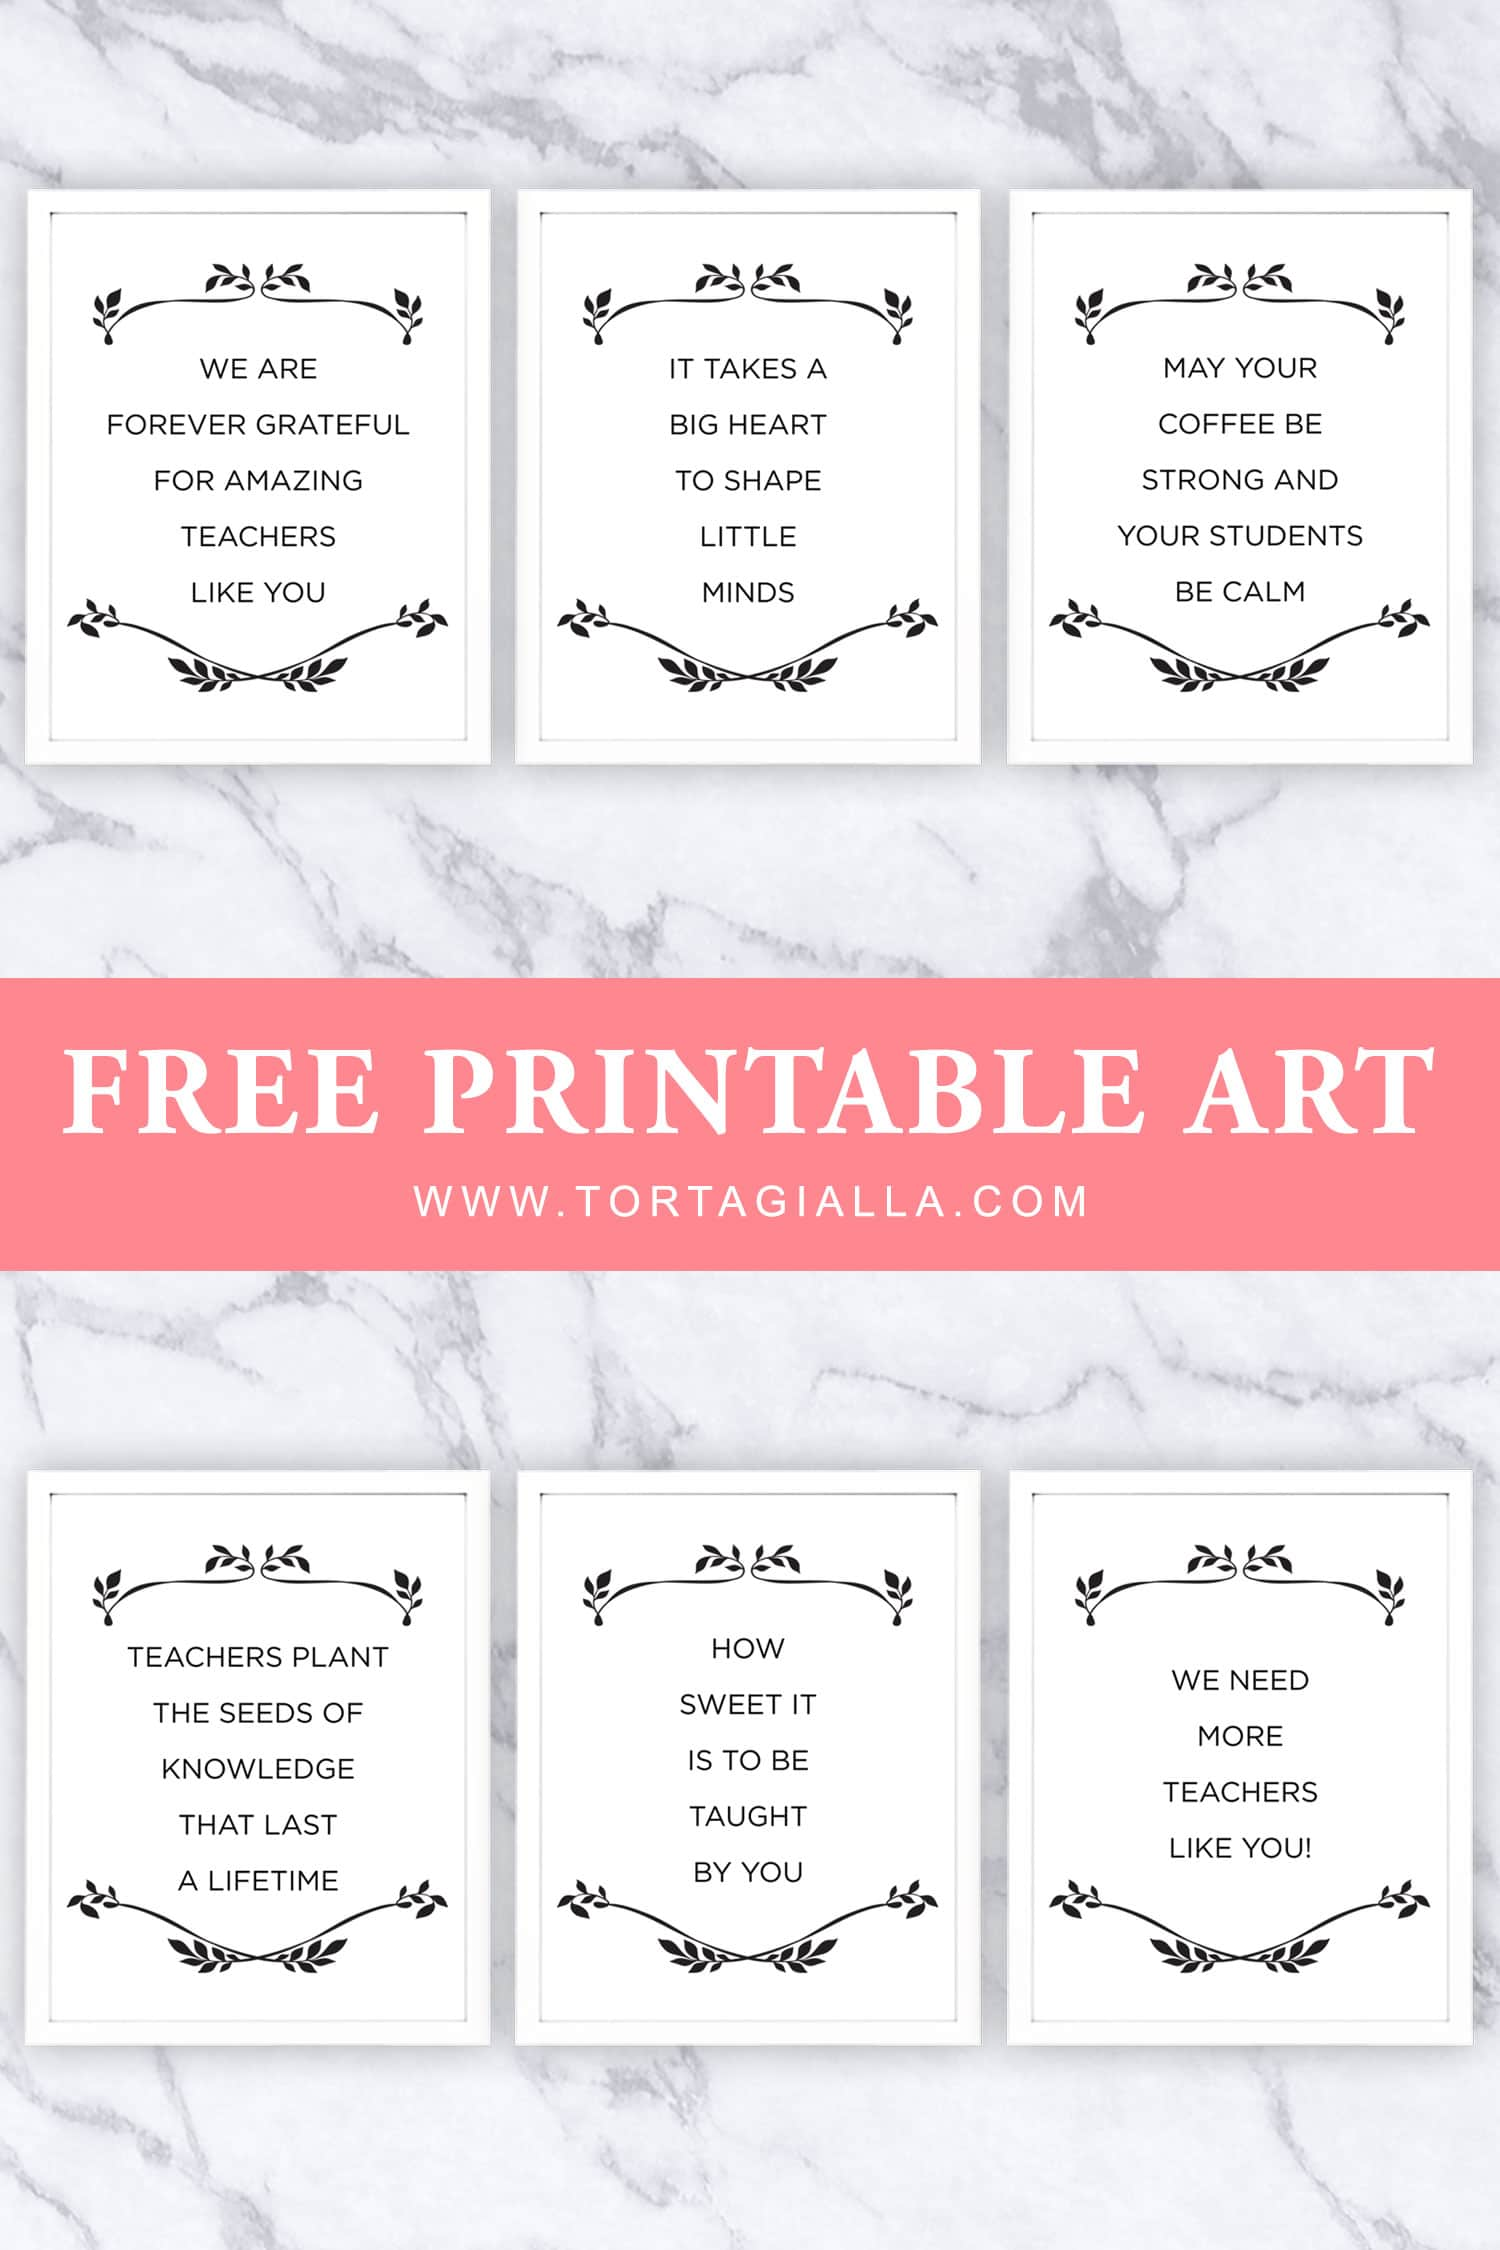 photograph about Free Printable Teacher Appreciation Quotes titled Absolutely free Printable Instructor Appreciation Prices tortagialla